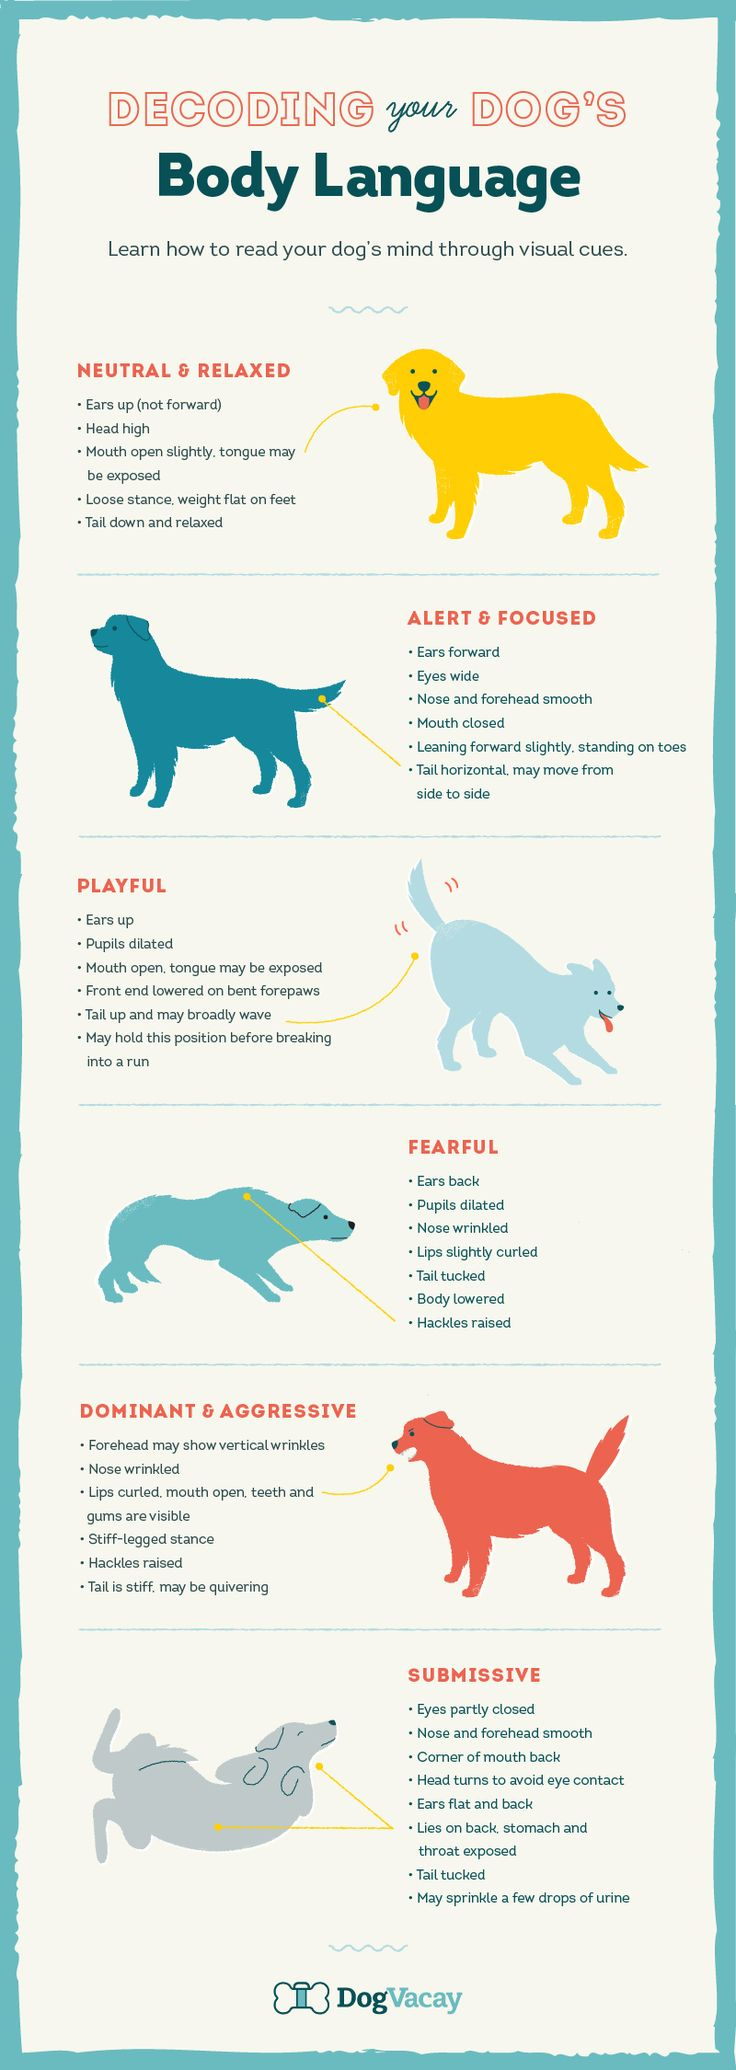 Learn how to read your dog's mind through visual cues and use your knowledge wisely to avoid high-risk situations.